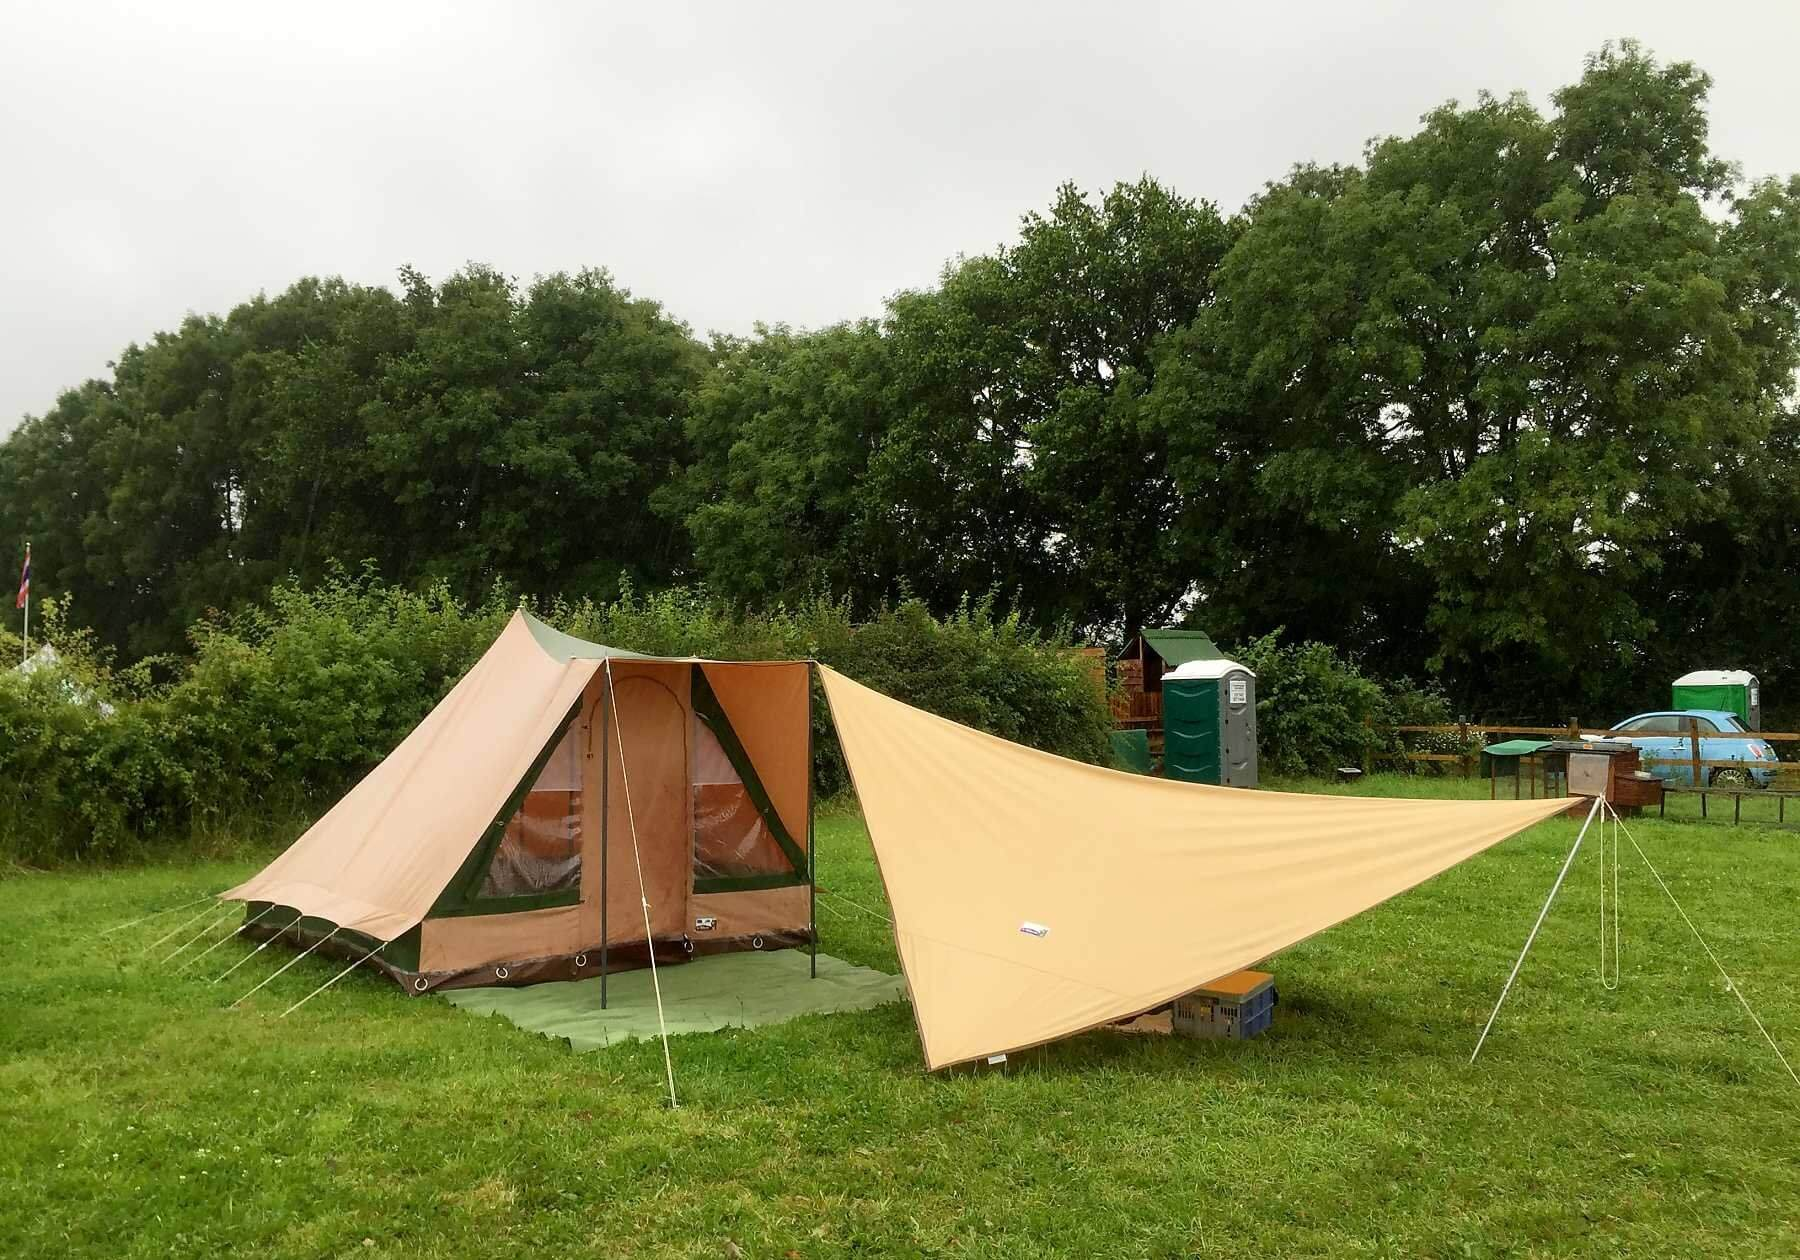 Botany Camping, Warminster, Wiltshire | Head Outside